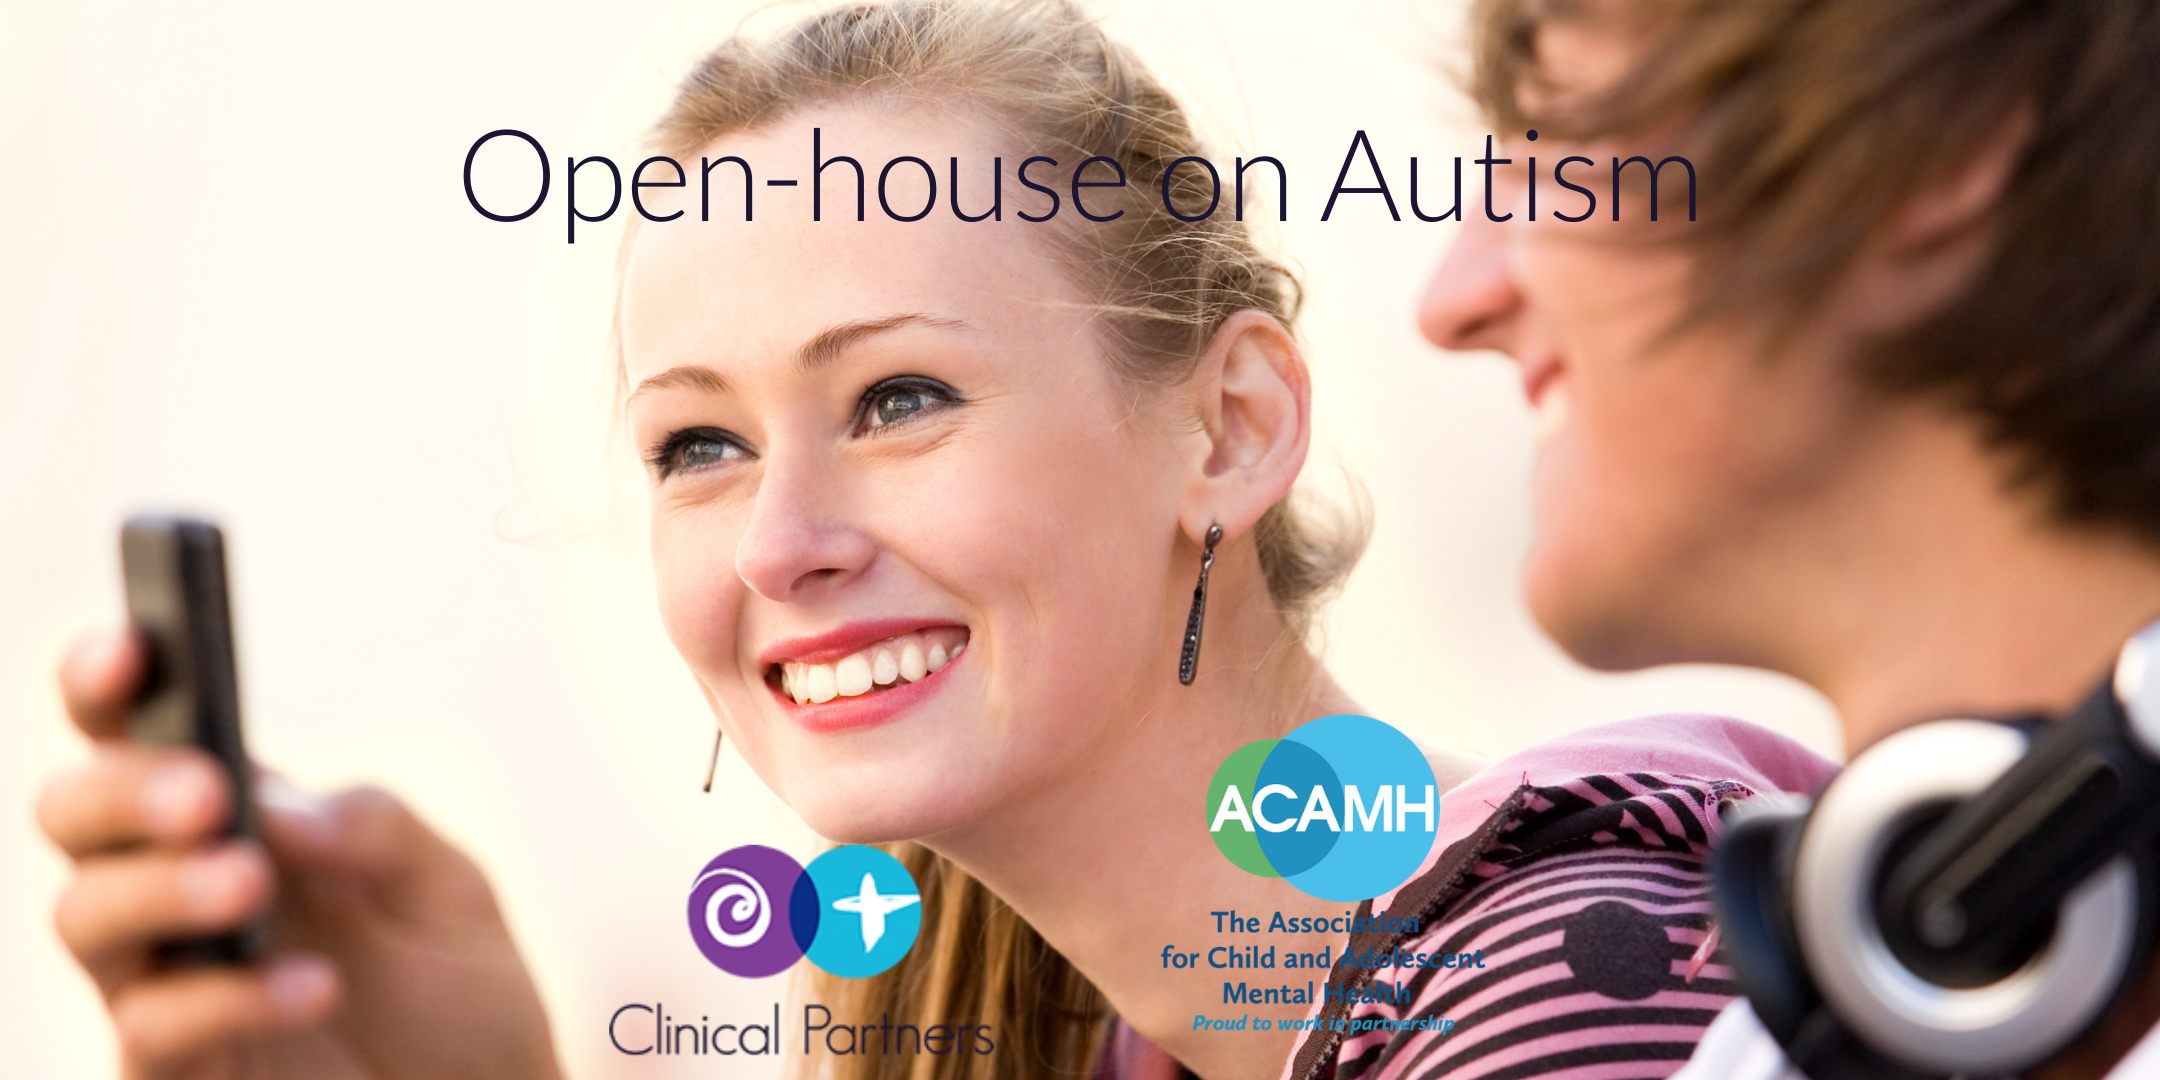 Tackling low diagnosis of autism in girls - key features to note